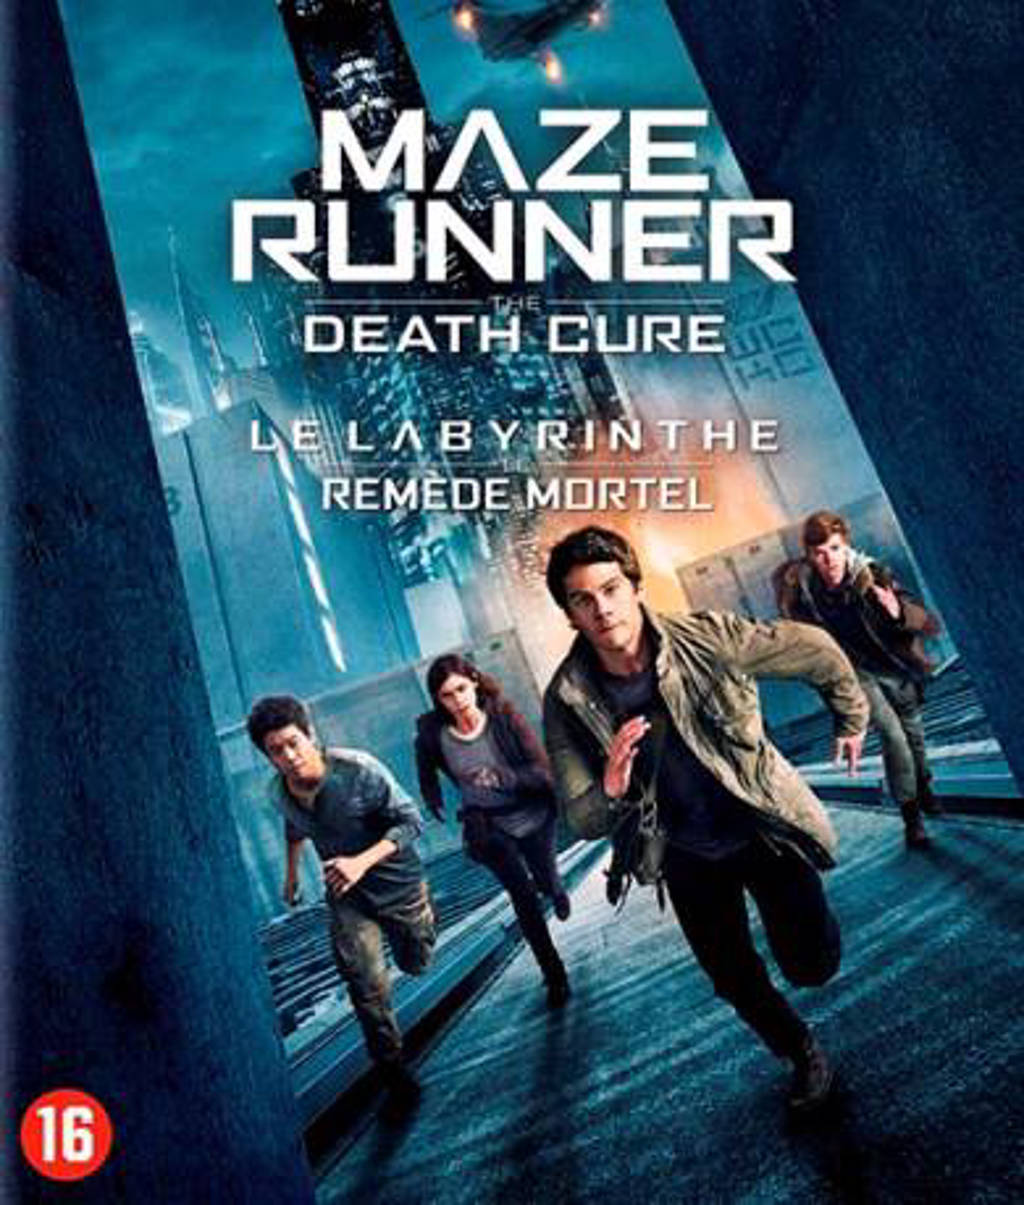 Maze runner - The death cure (Blu-ray)